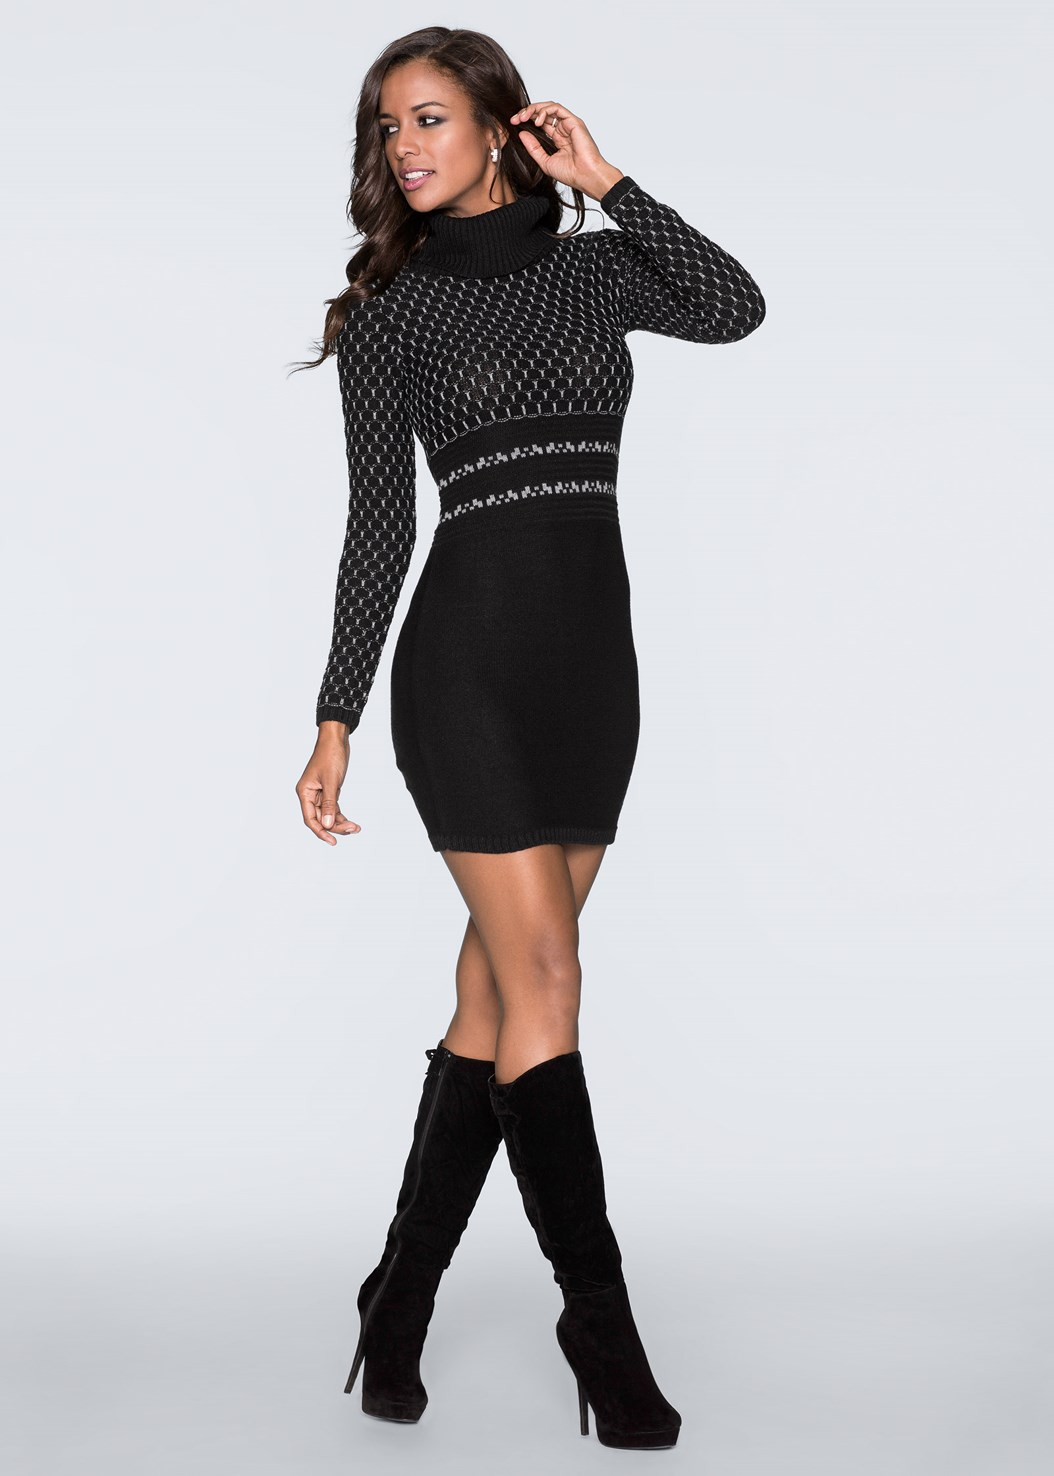 Turtleneck Sweater Dress,Seamless Unlined Bra,Heel Embellished Boot